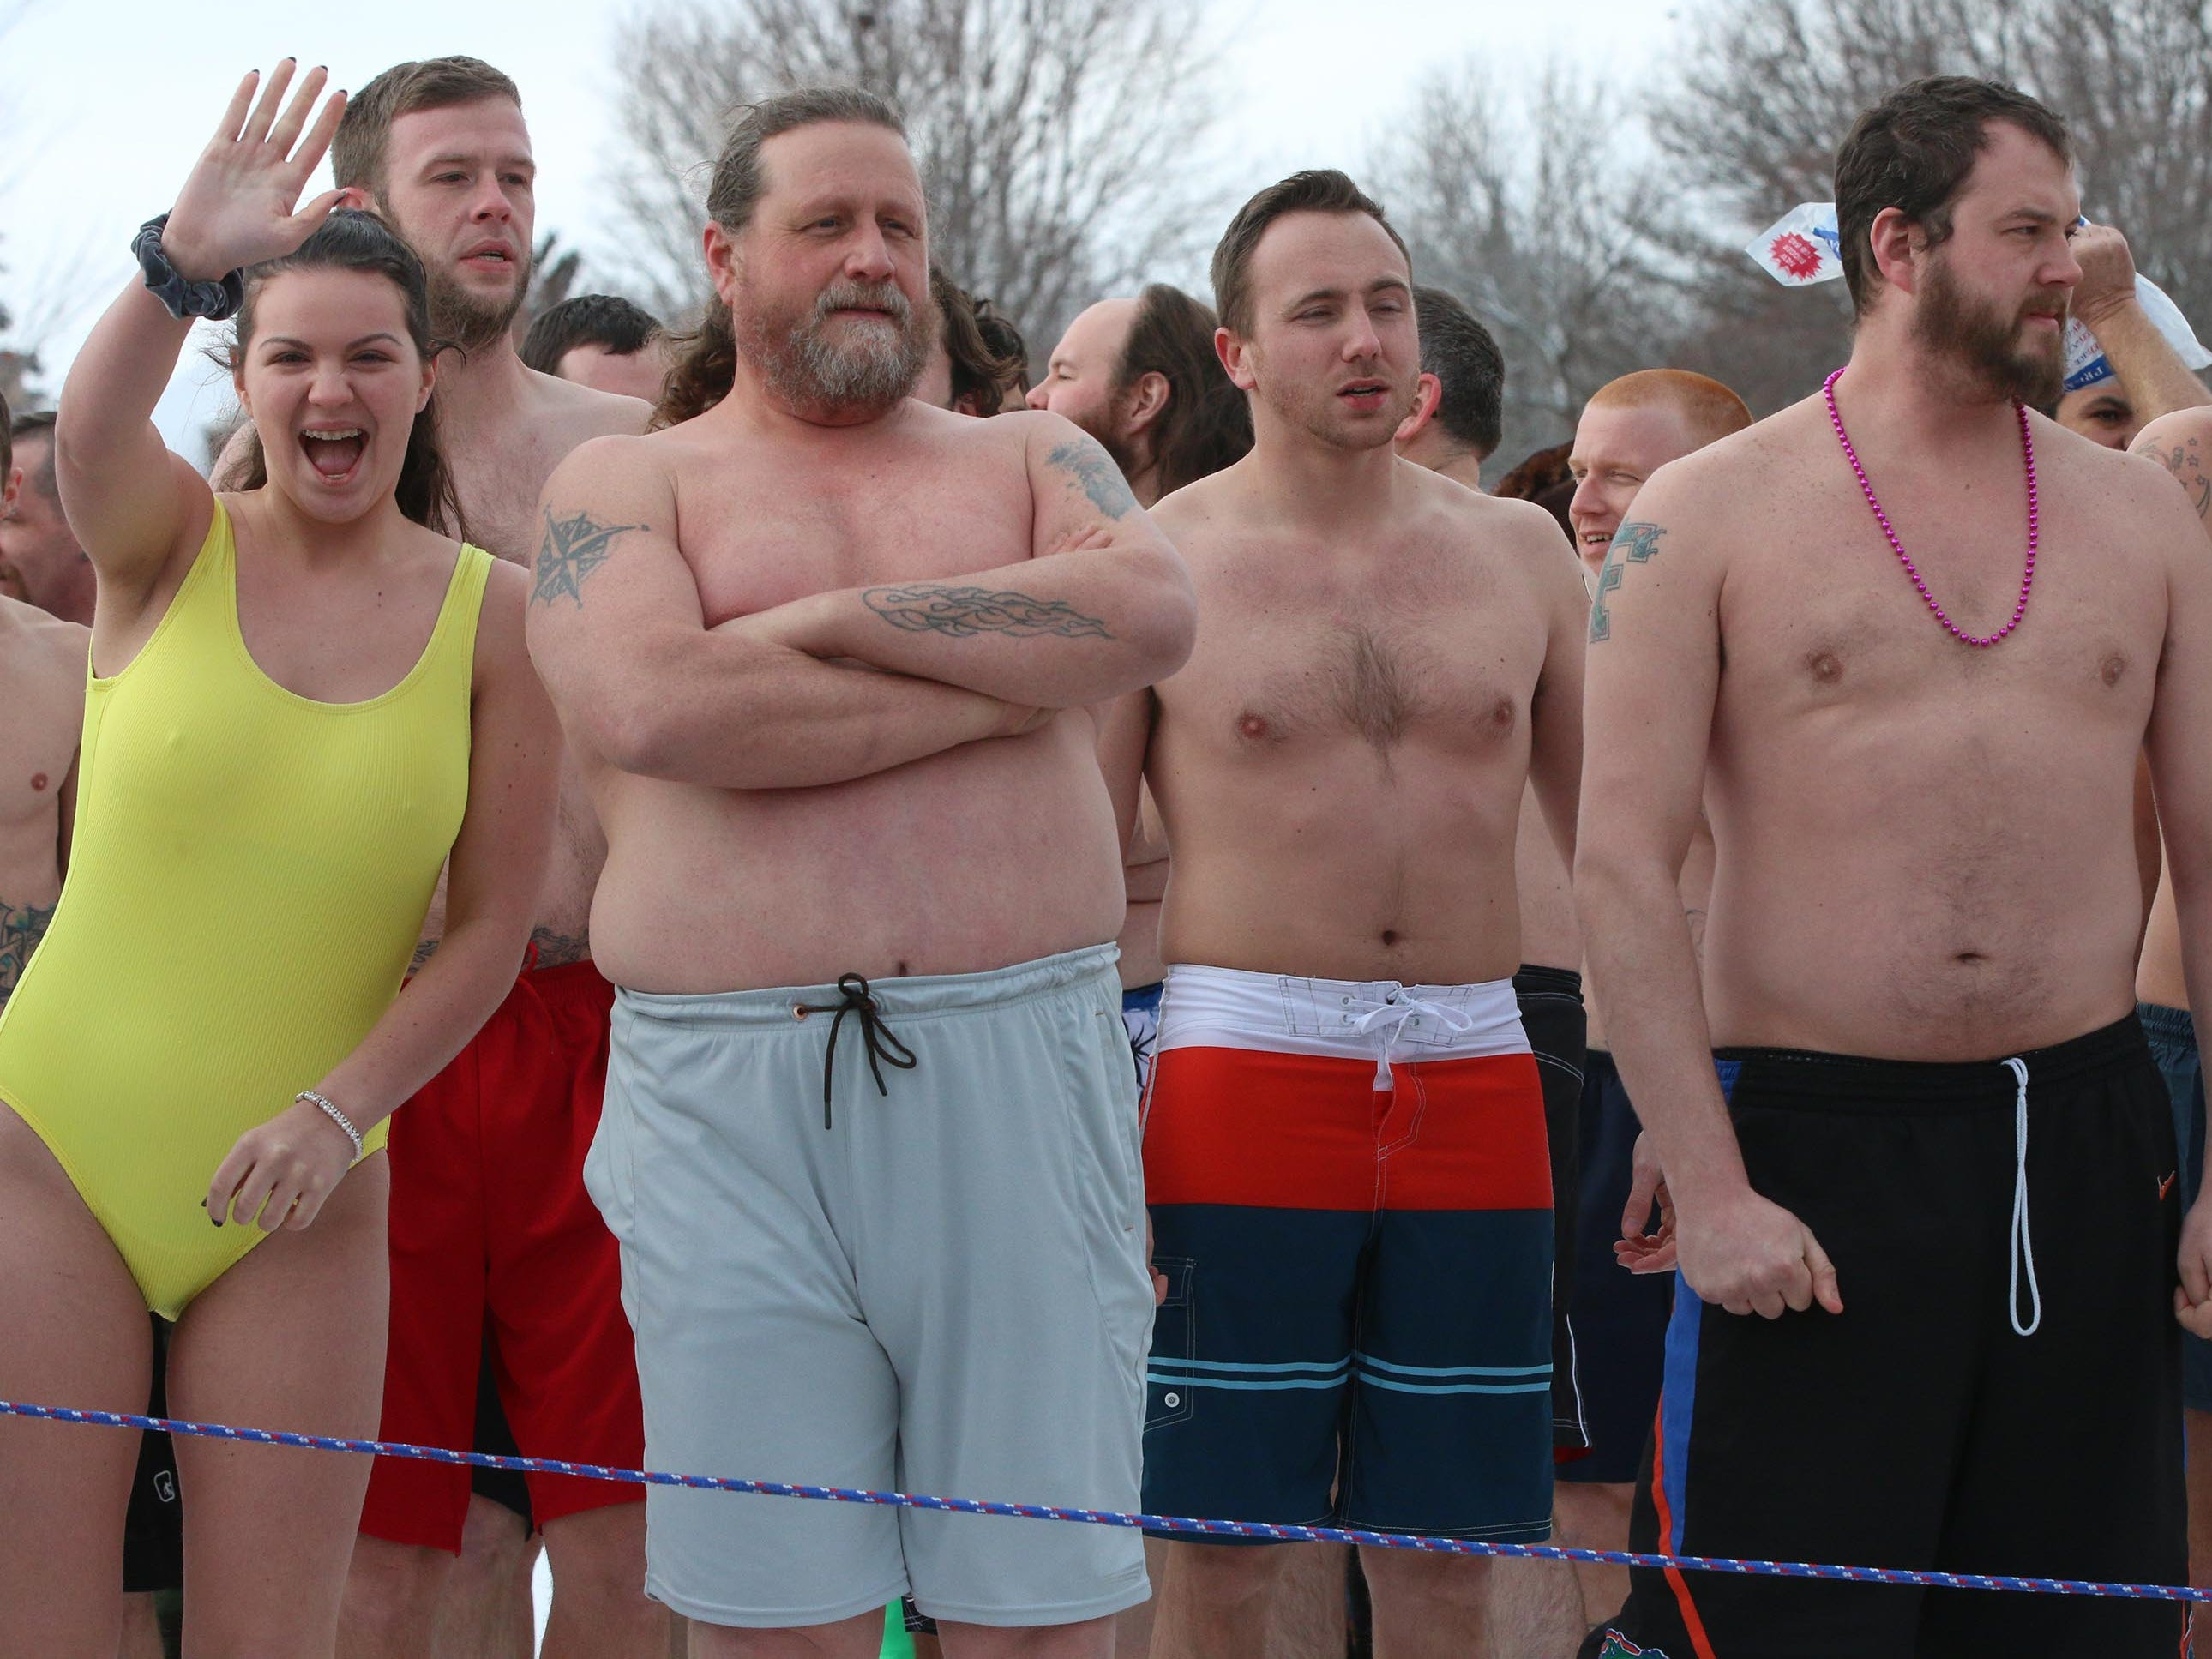 Polar Bears await the count down for their annual plunge into Lake Michigan, Tuesday, January 1, 2019, at Deland Park in Sheboygan, Wis.